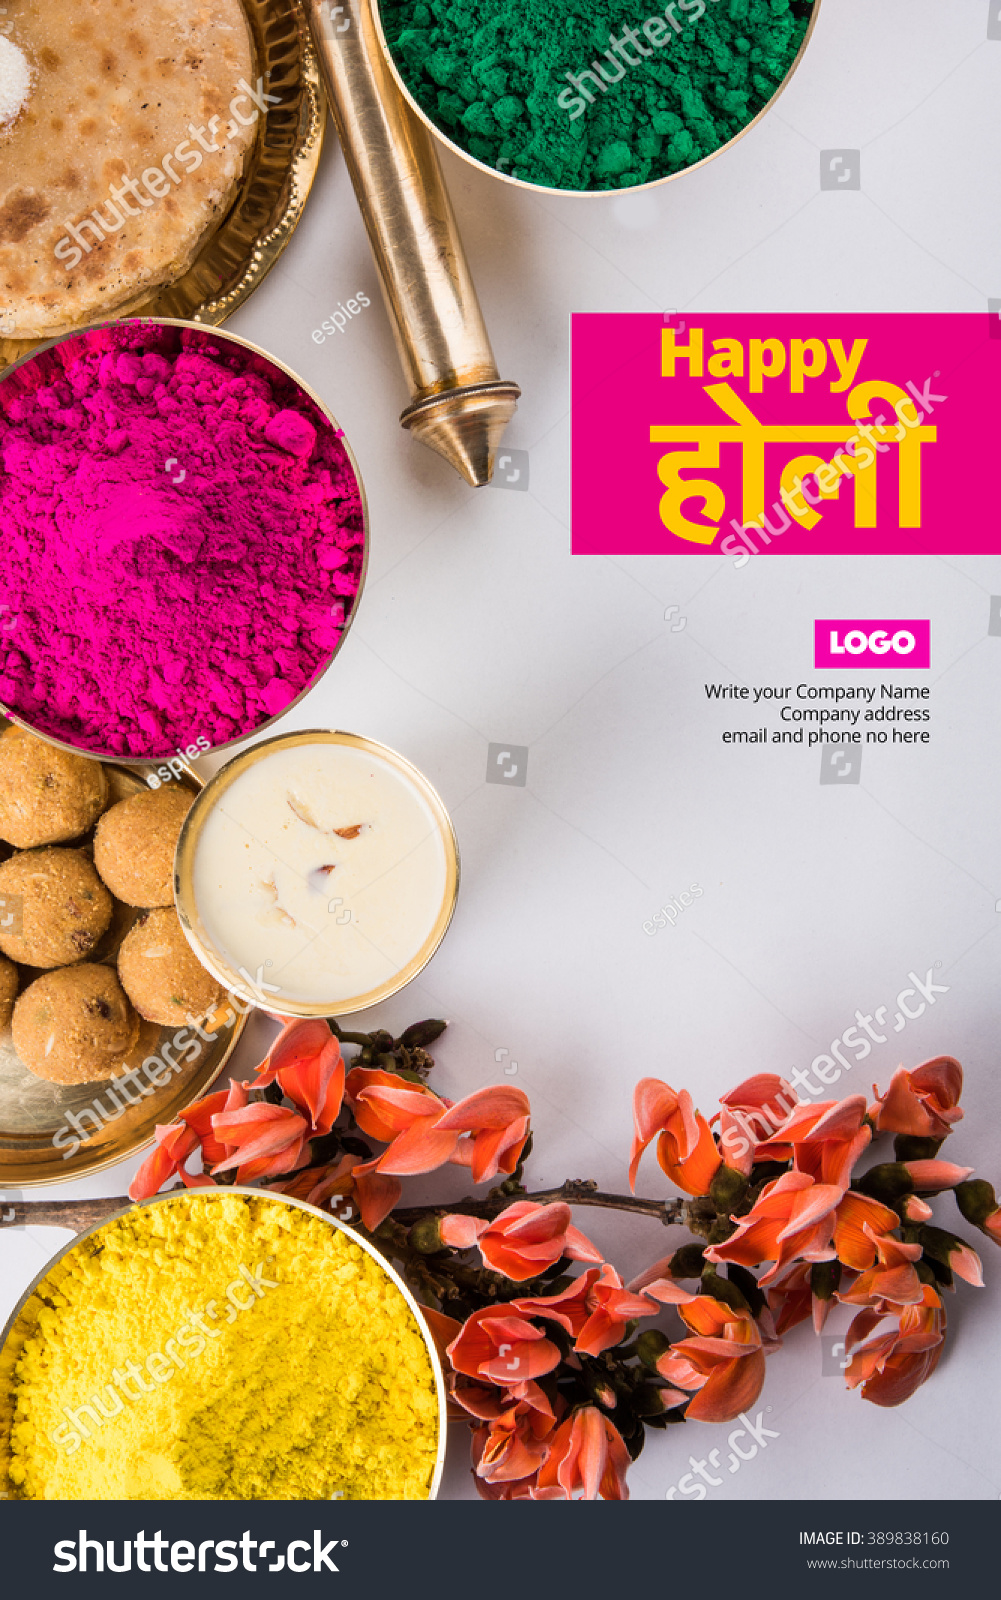 Happy holi greeting card designed showing stock photo royalty free happy holi greeting card designed showing stock photo royalty free 389838160 shutterstock forumfinder Gallery